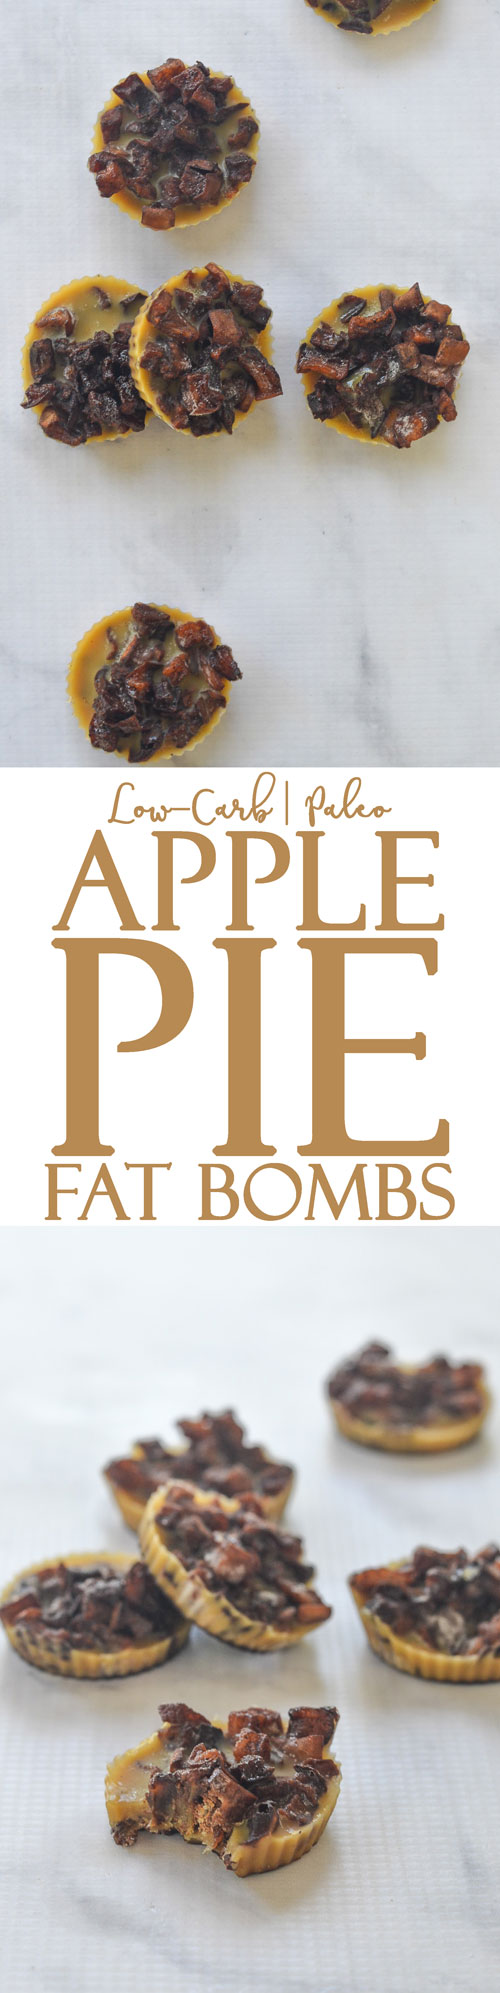 Looking for some pie this fall but don't want the carb-filled crust that usually comes along? These apple pie fat bombs taste just like the pie filling! Low-carb, keto, sugar-free, Paleo, gluten-free, grain-free.